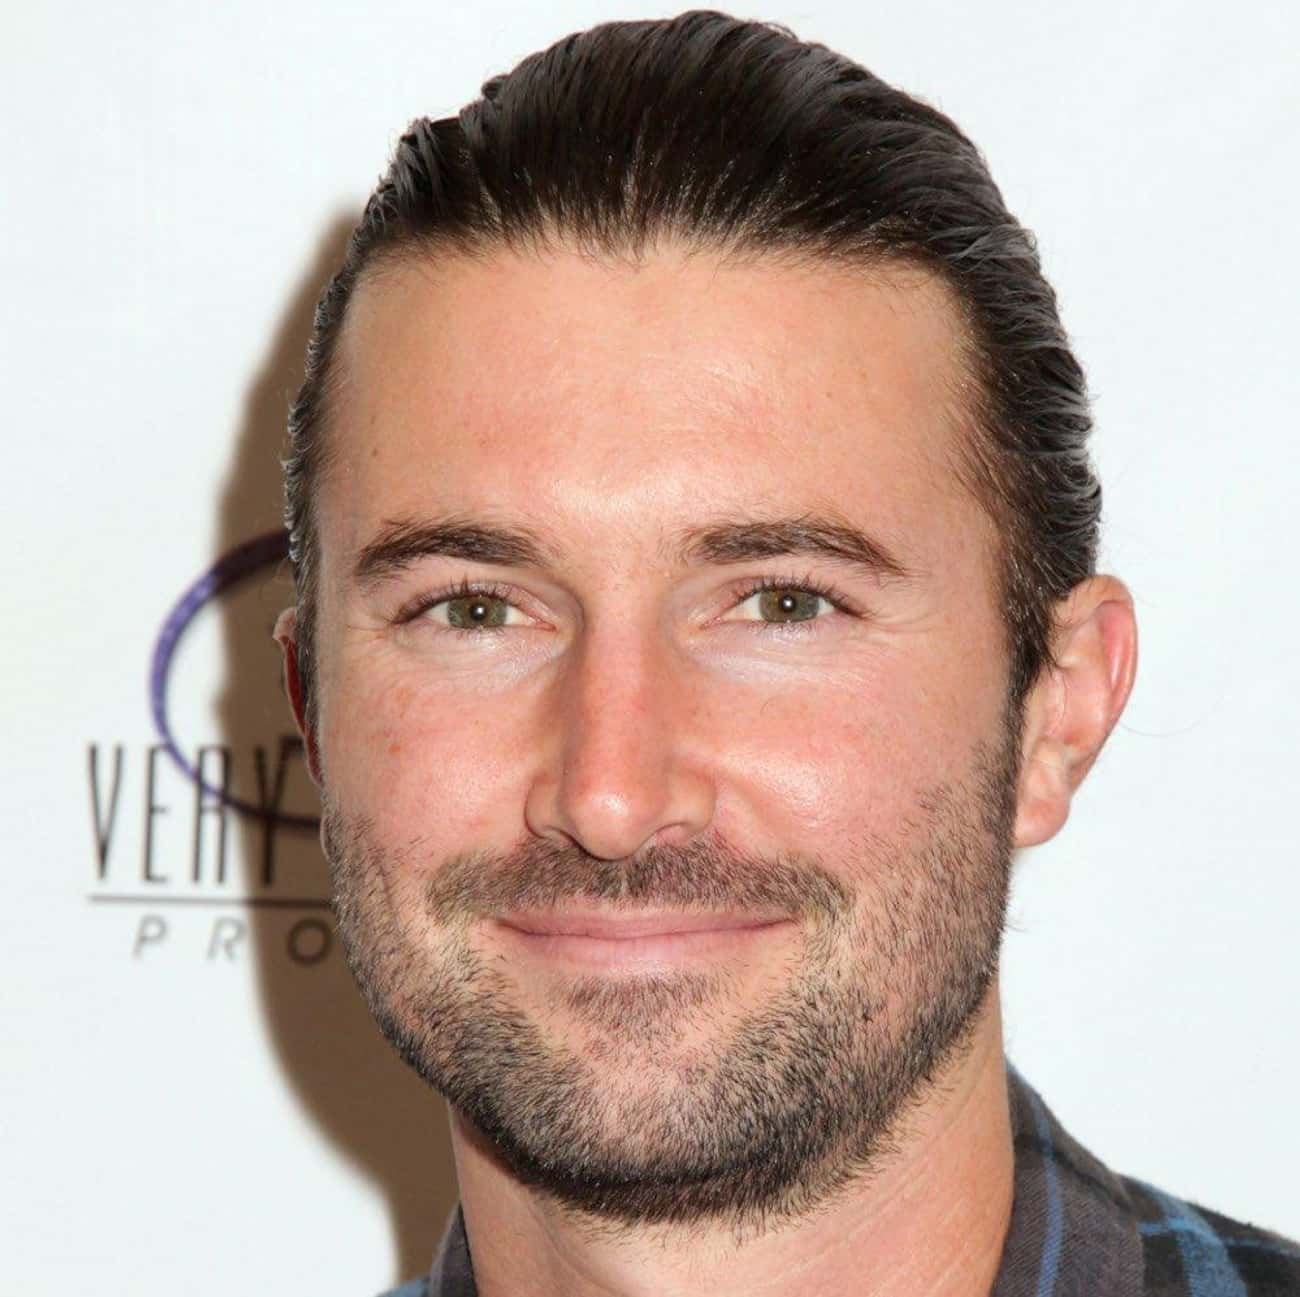 Brandon Jenner Was Taken Aback is listed (or ranked) 1 on the list How the Kardashian/Jenner Families Reacted To Caitlyn Jenner